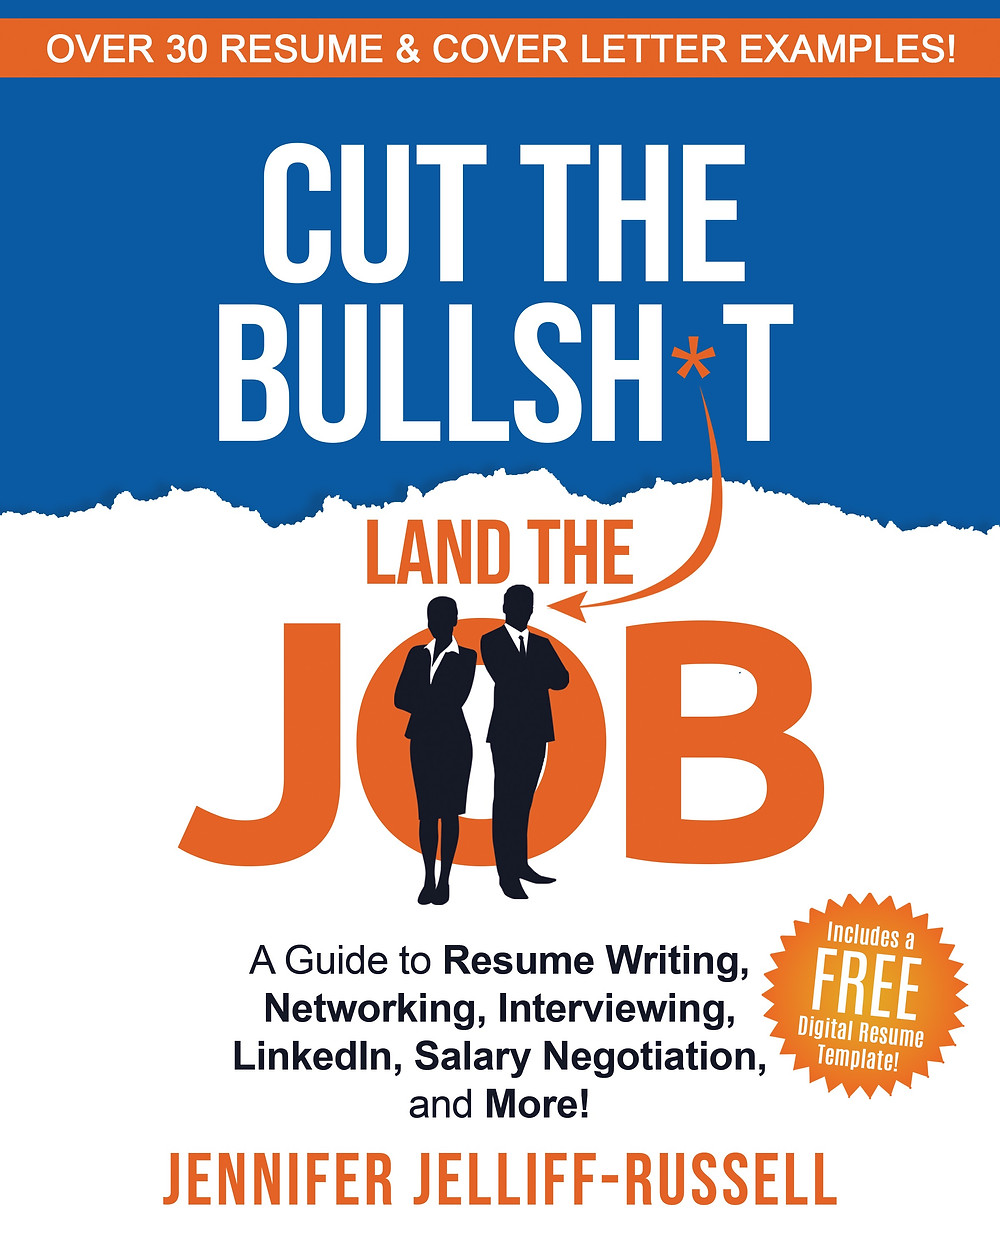 Book Cover for Cut the Bullshit, Land teh Job: A Guide to Resume Writing, Networking, Interviewing, LinkedIn, Salary Negotiation, and More!